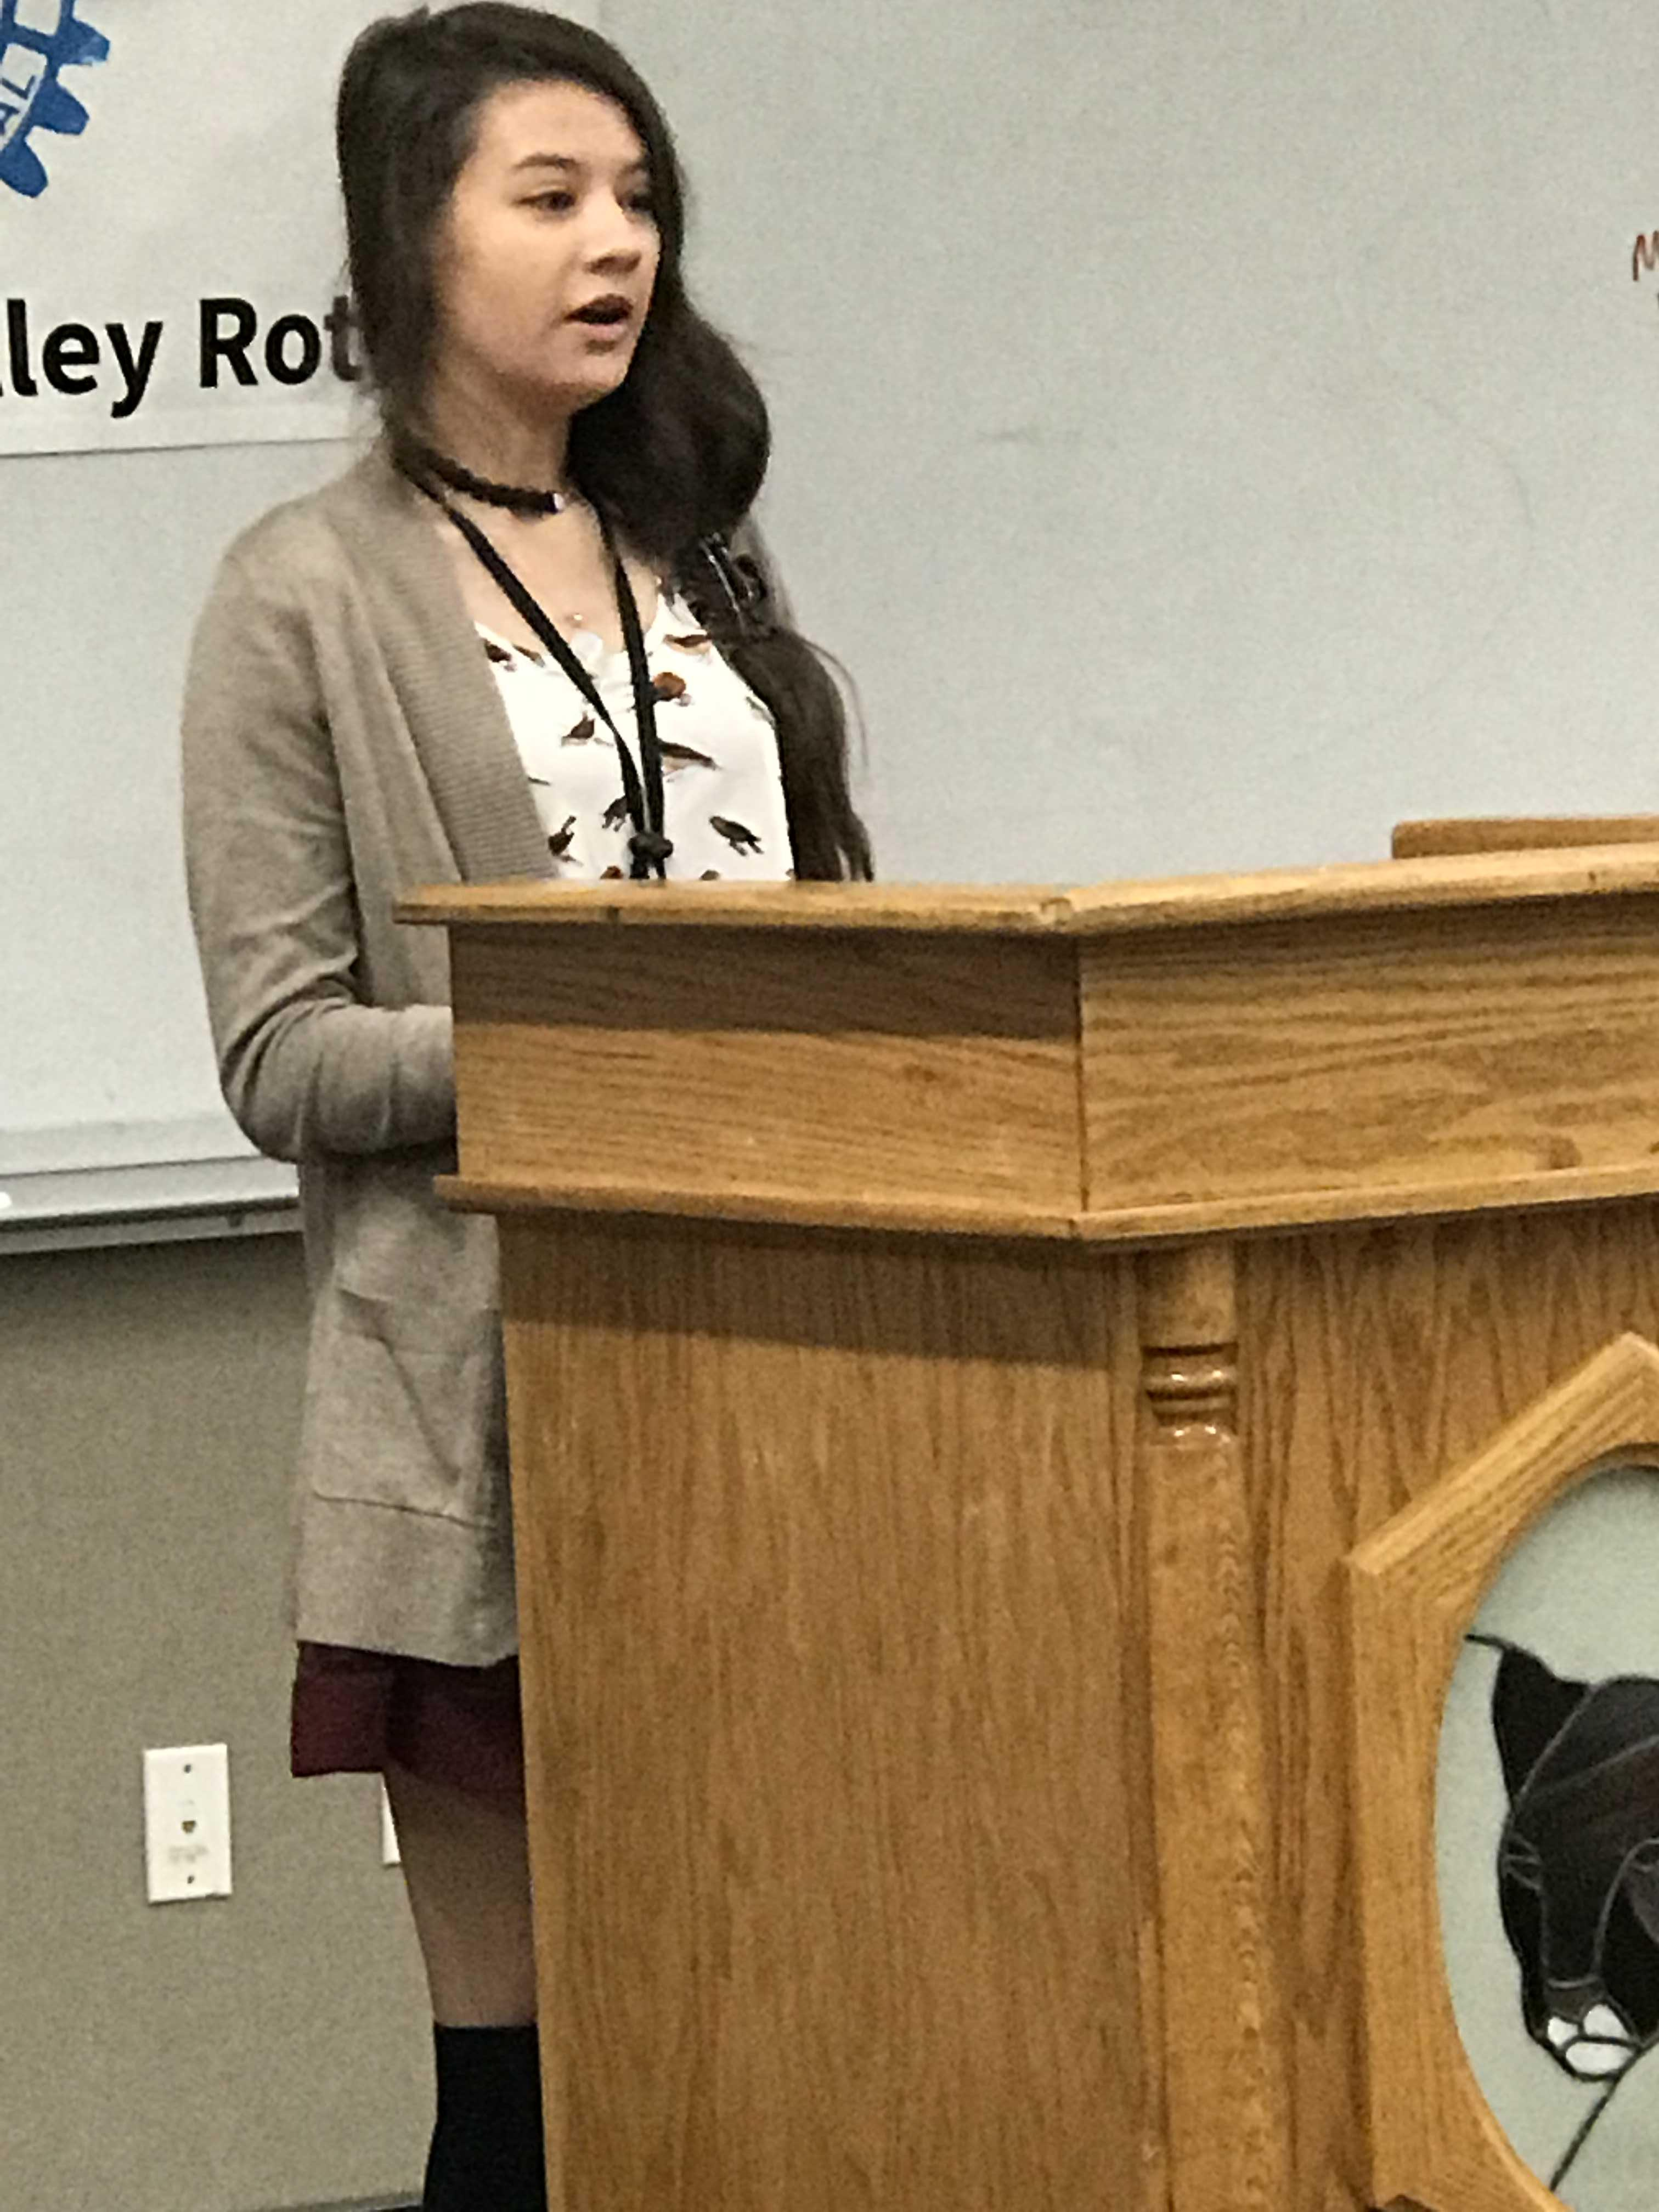 Student giving speech at Rotary Speech Contest